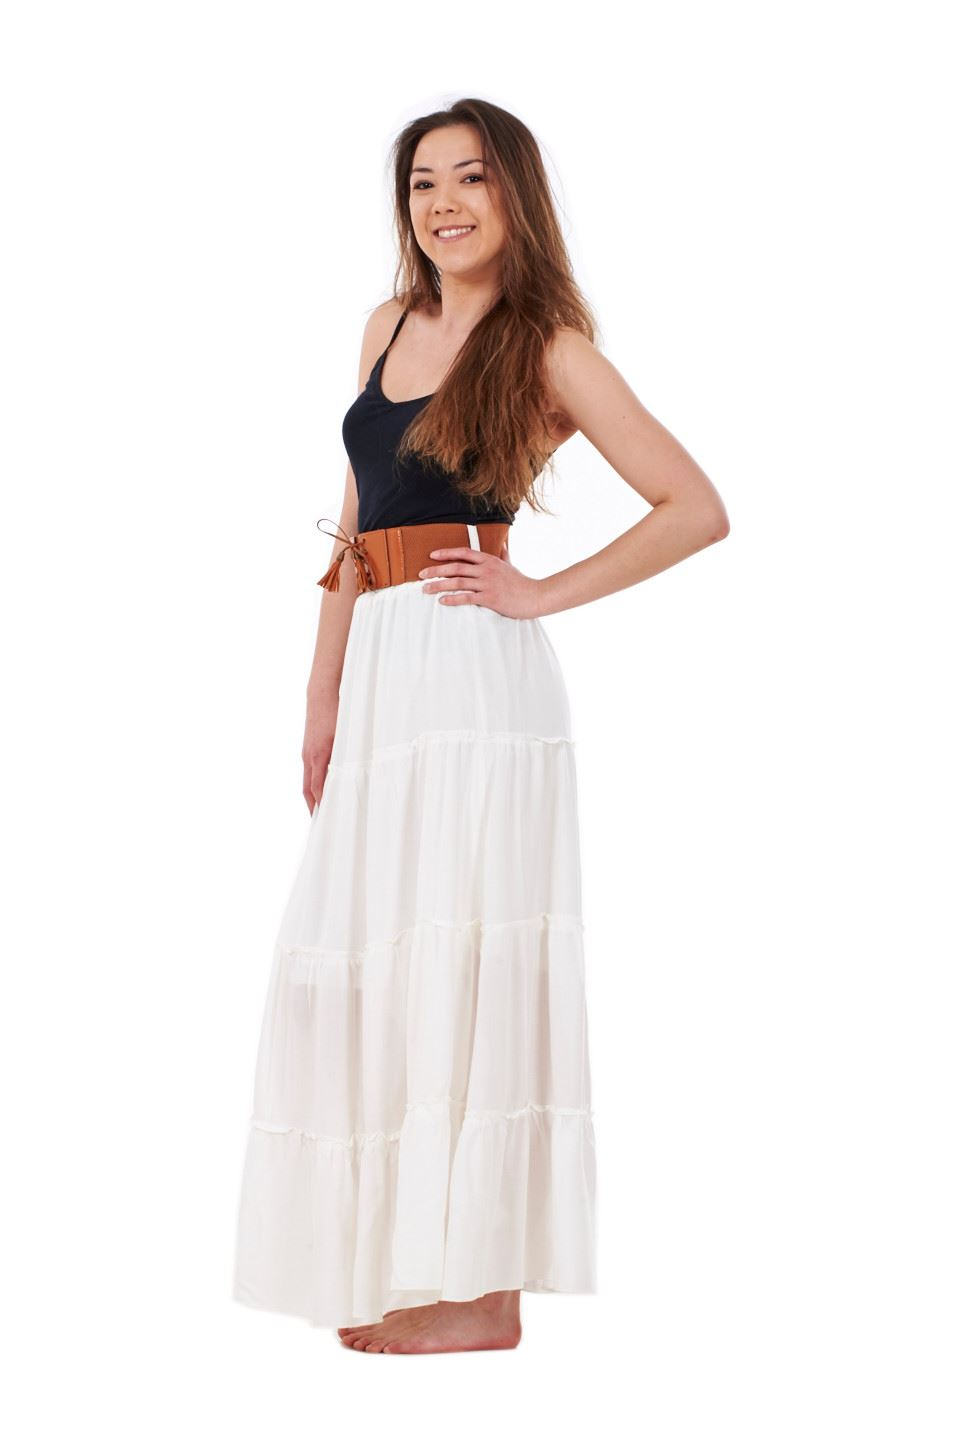 thumbnail 5 - New Ladies Skirt Elasticated Long Maxi High Waist Belted Casual Wear 8 to 14